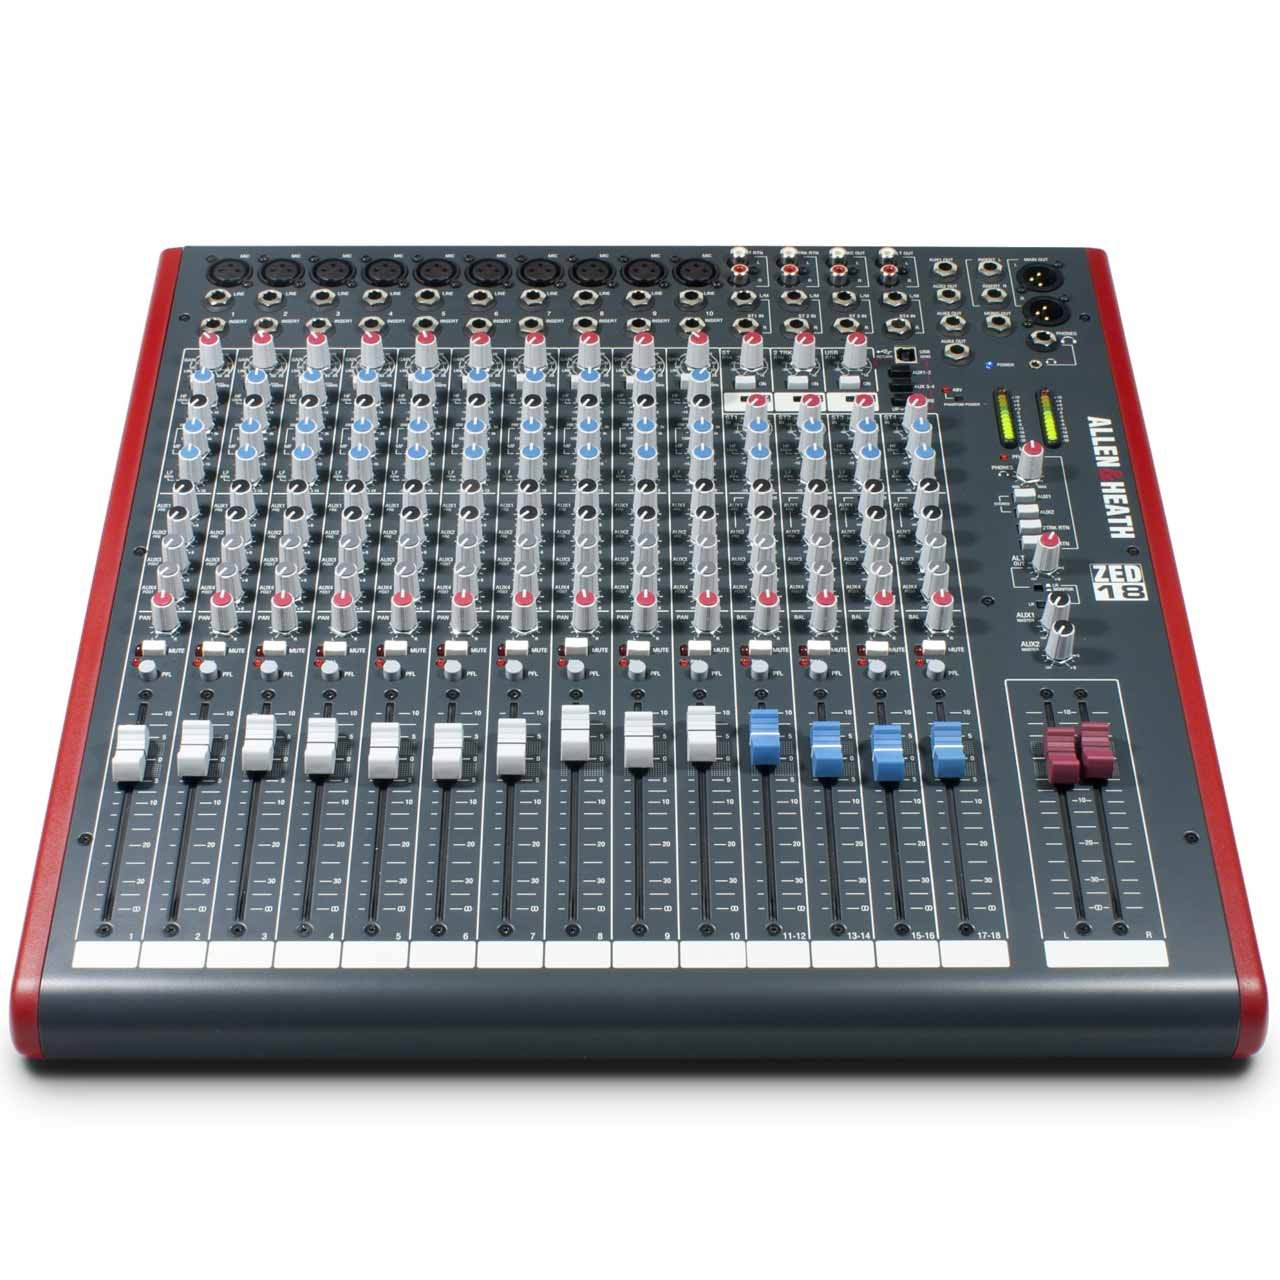 Analog Mixers - Allen & Heath ZED-18 - Analogue Mixer With USB